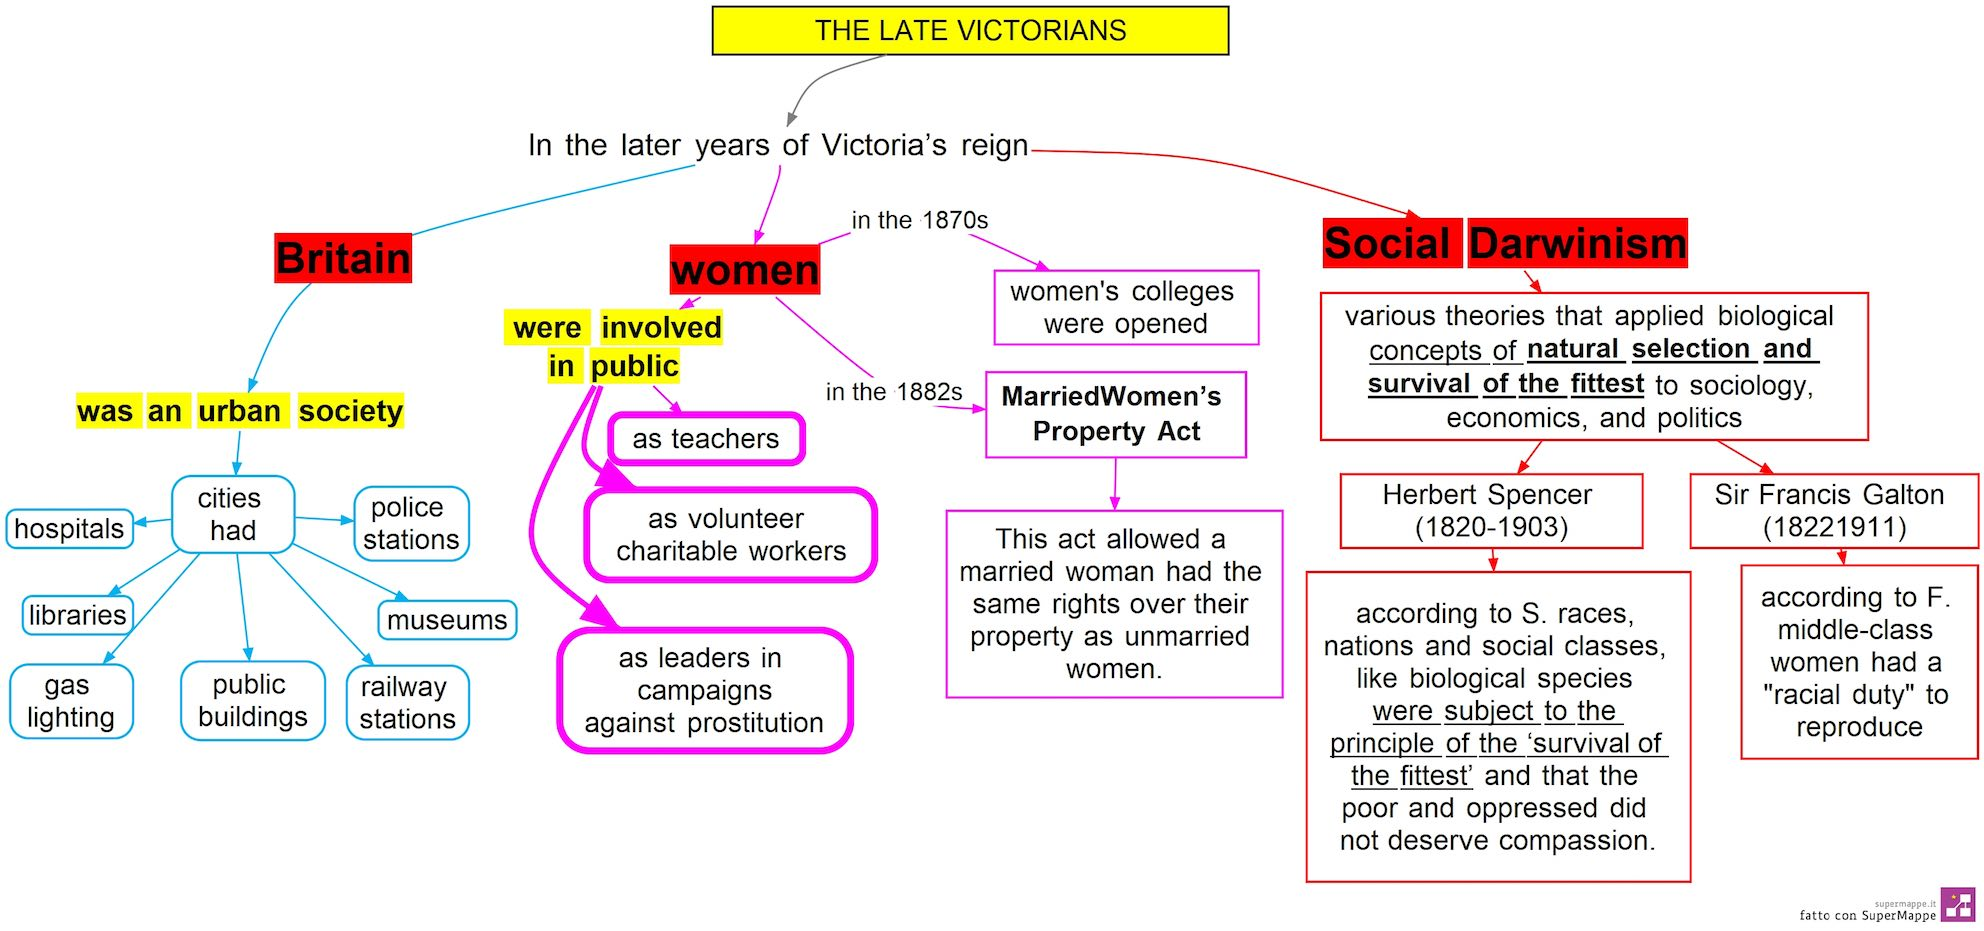 mappa concettuale The late Victorians